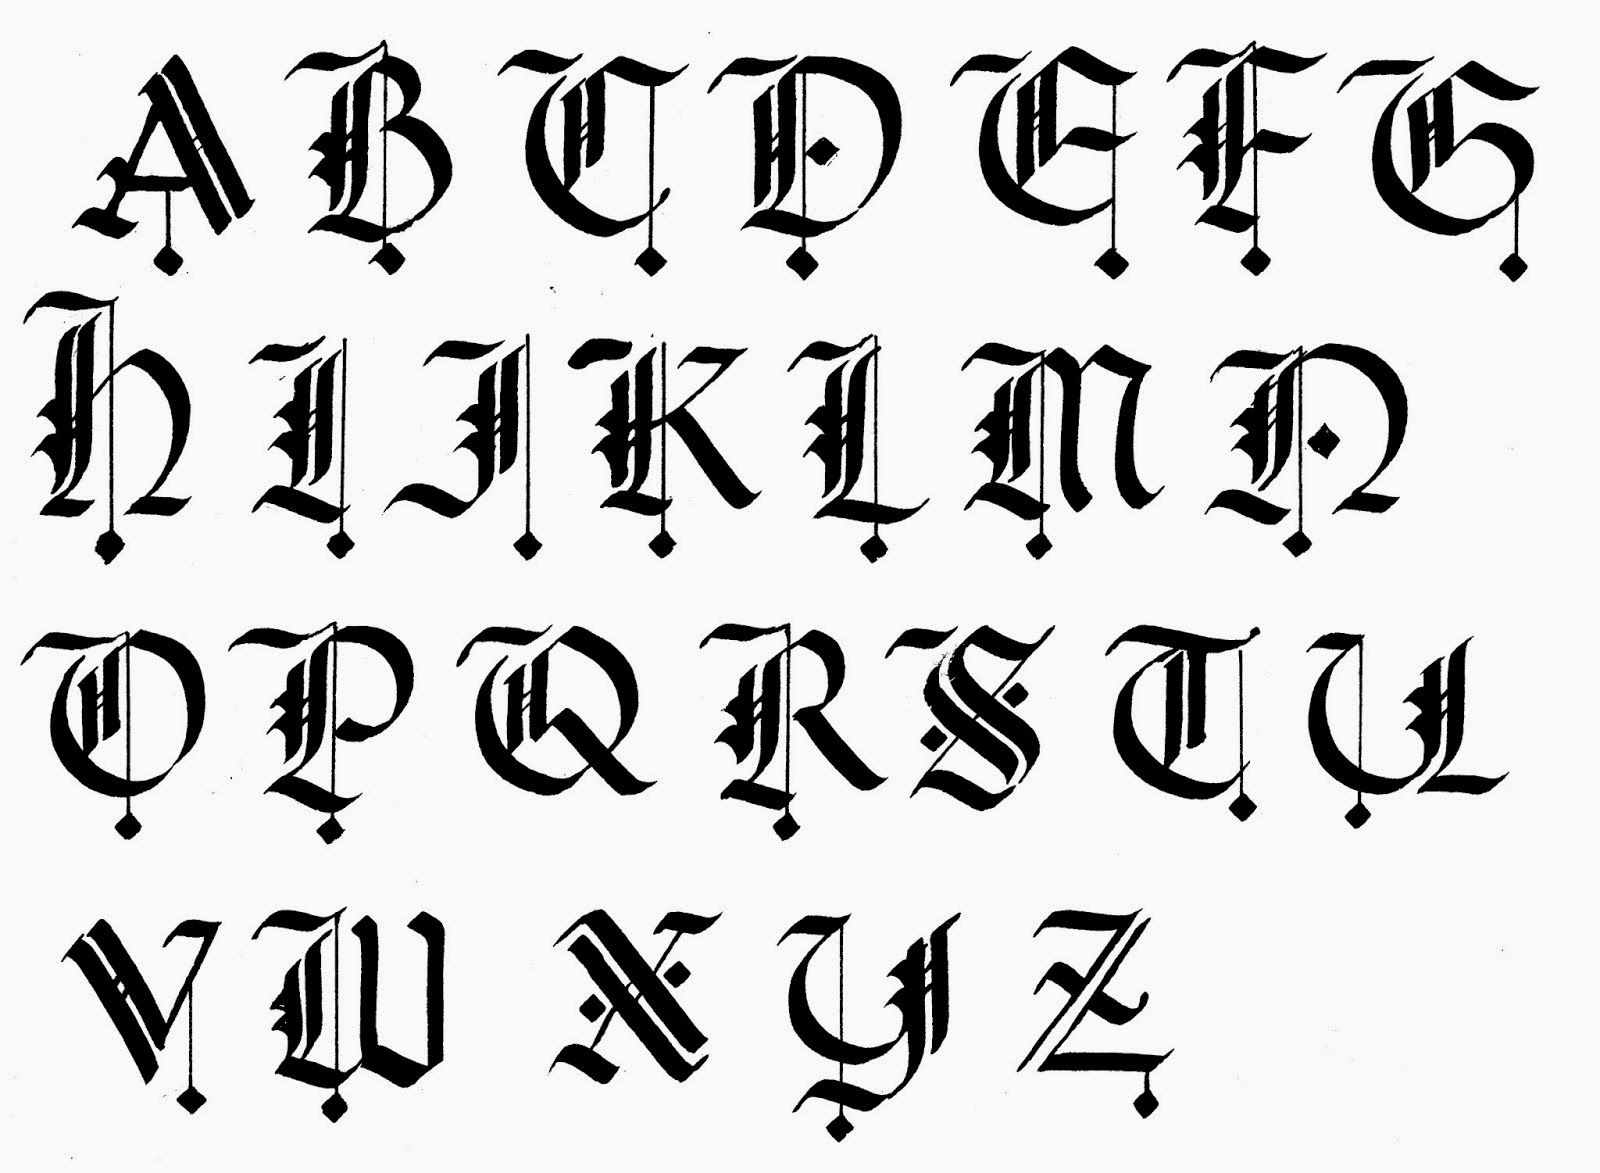 How To Write Calligraphy With A Normal Pen A To Z - arxiusarquitectura